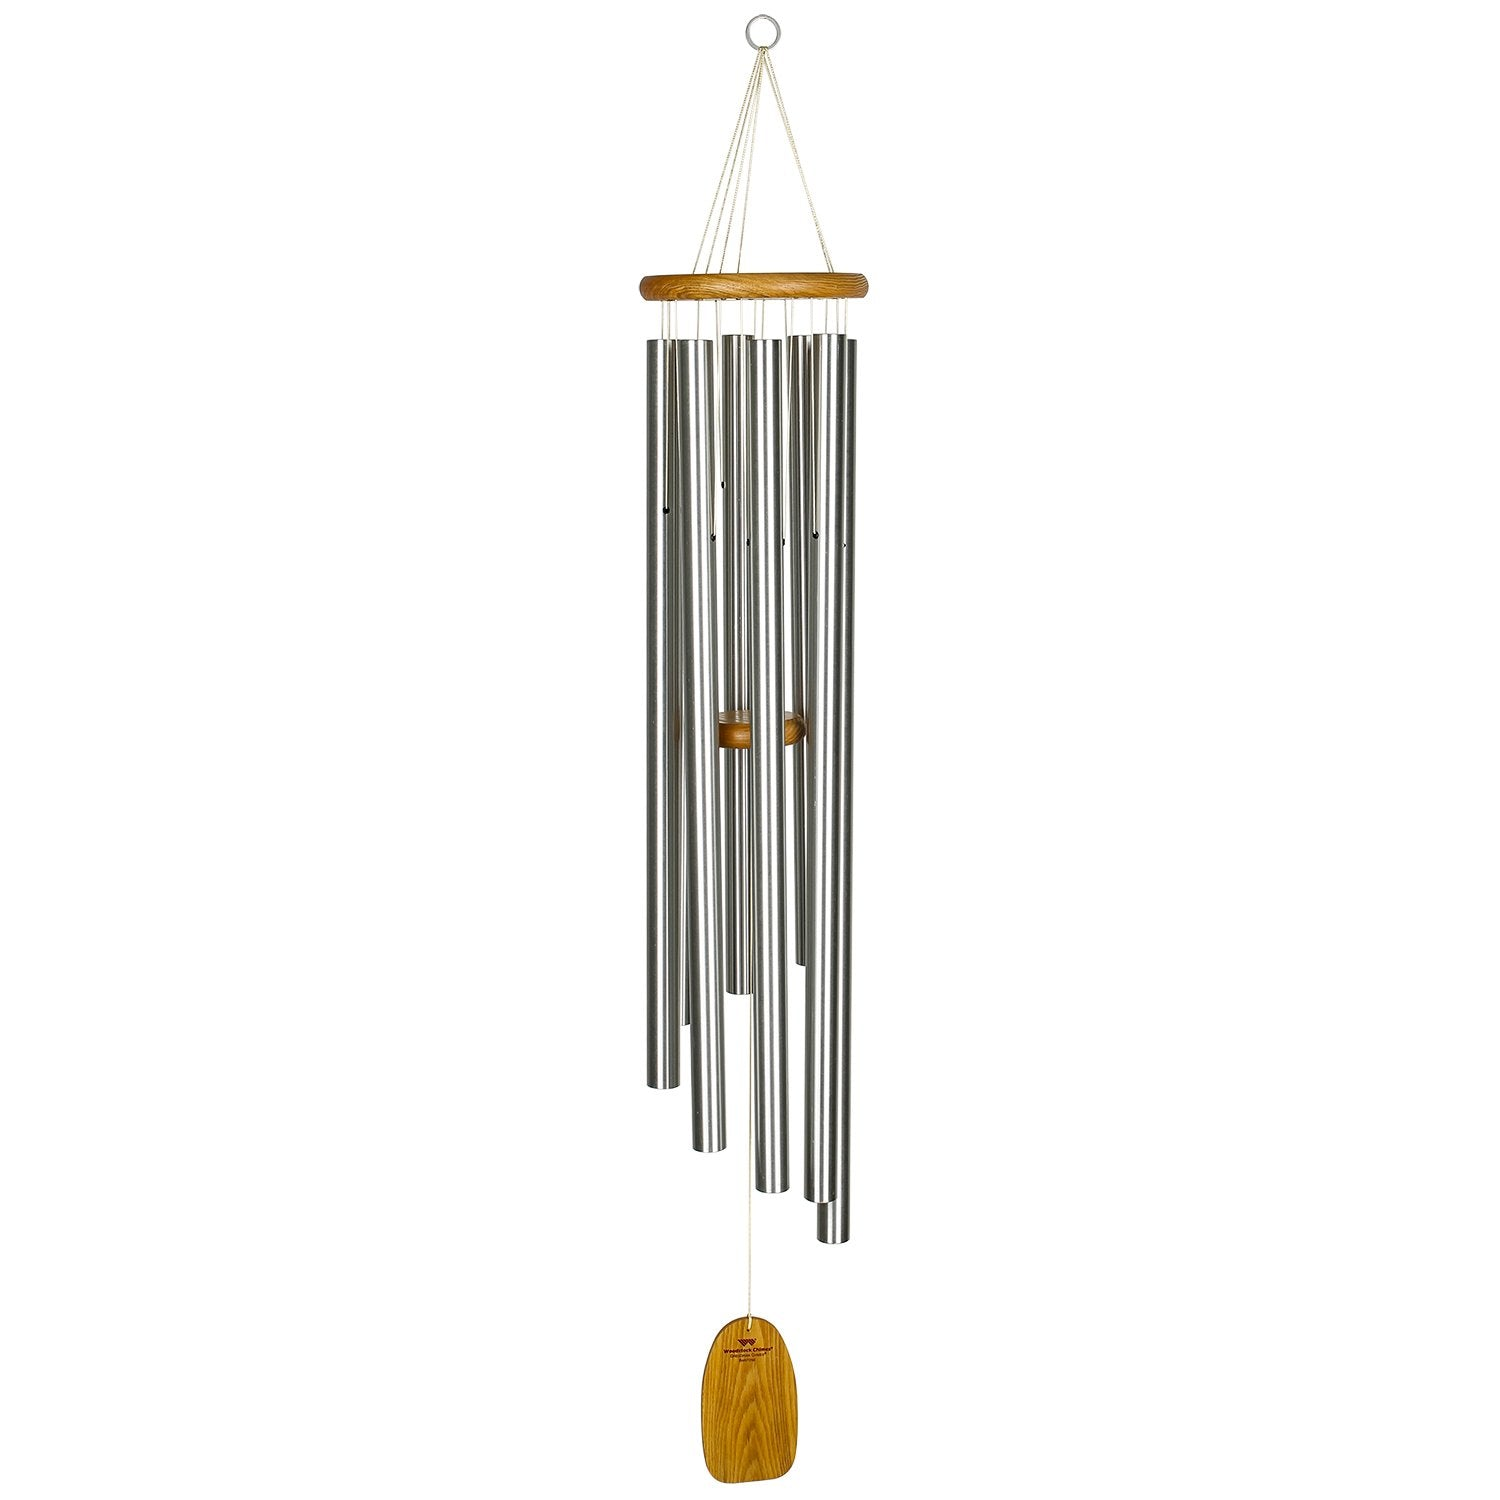 Gregorian Chimes - Baritone full product image